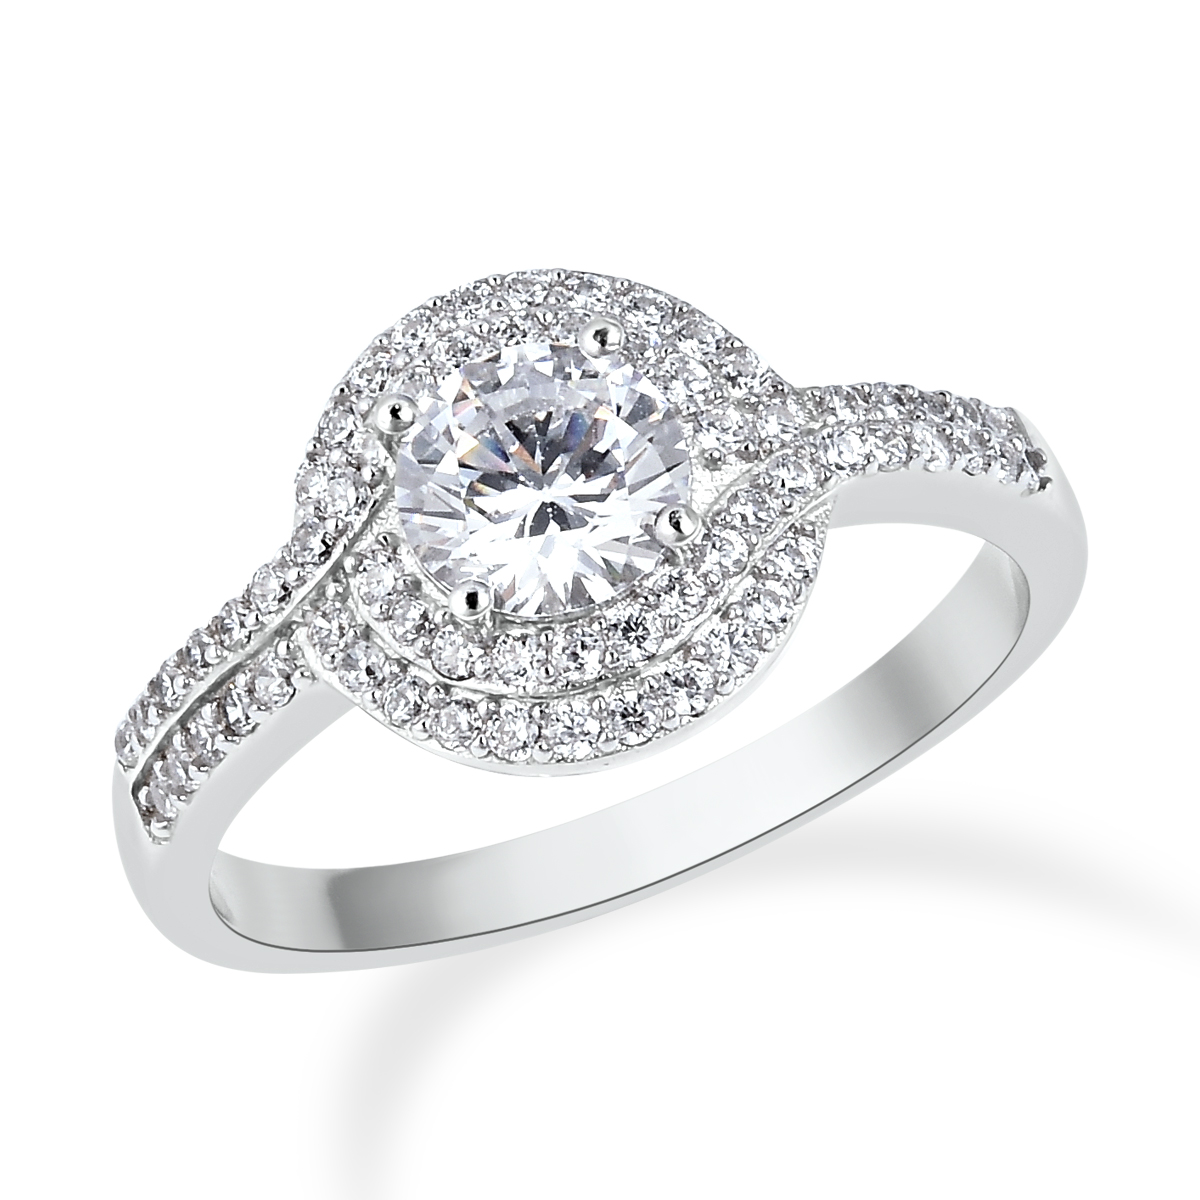 Lustro Stella cubic zirconia halo ring on white background.